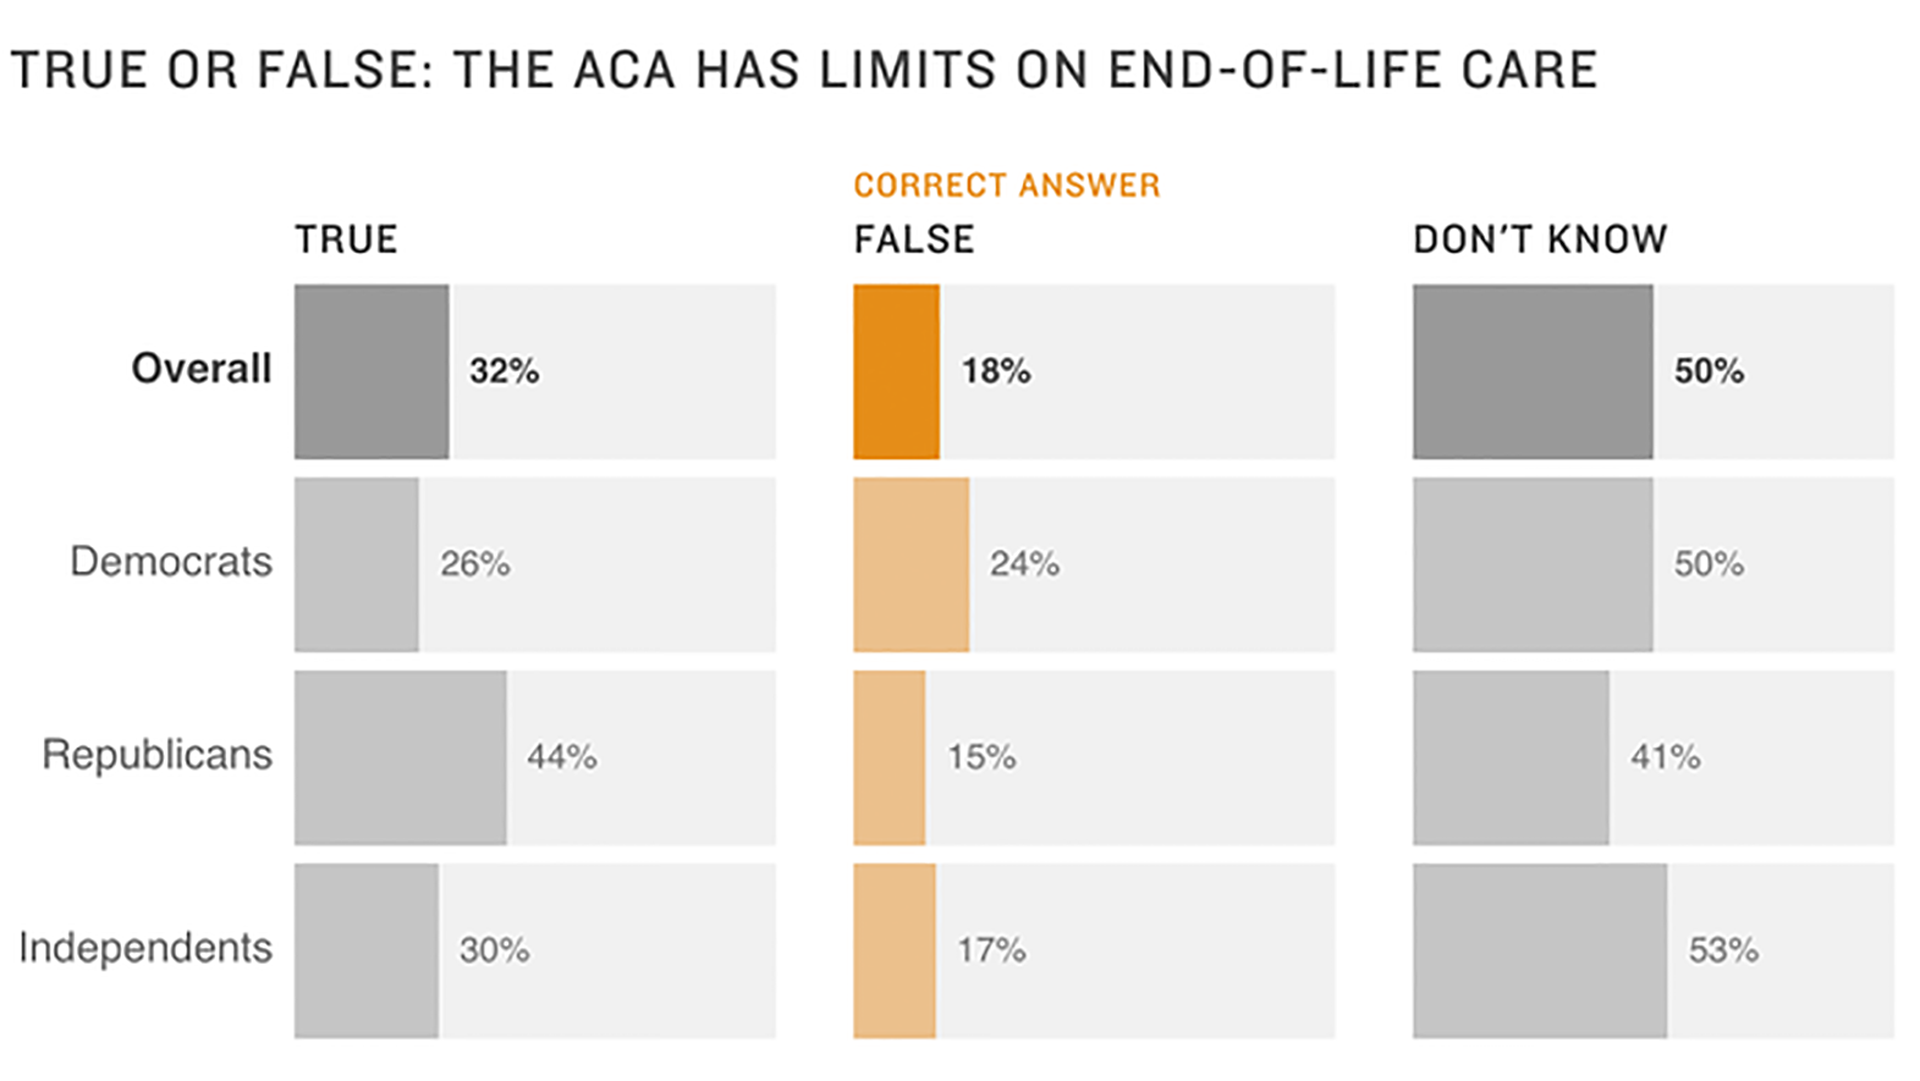 We asked people what they know about Obamacare